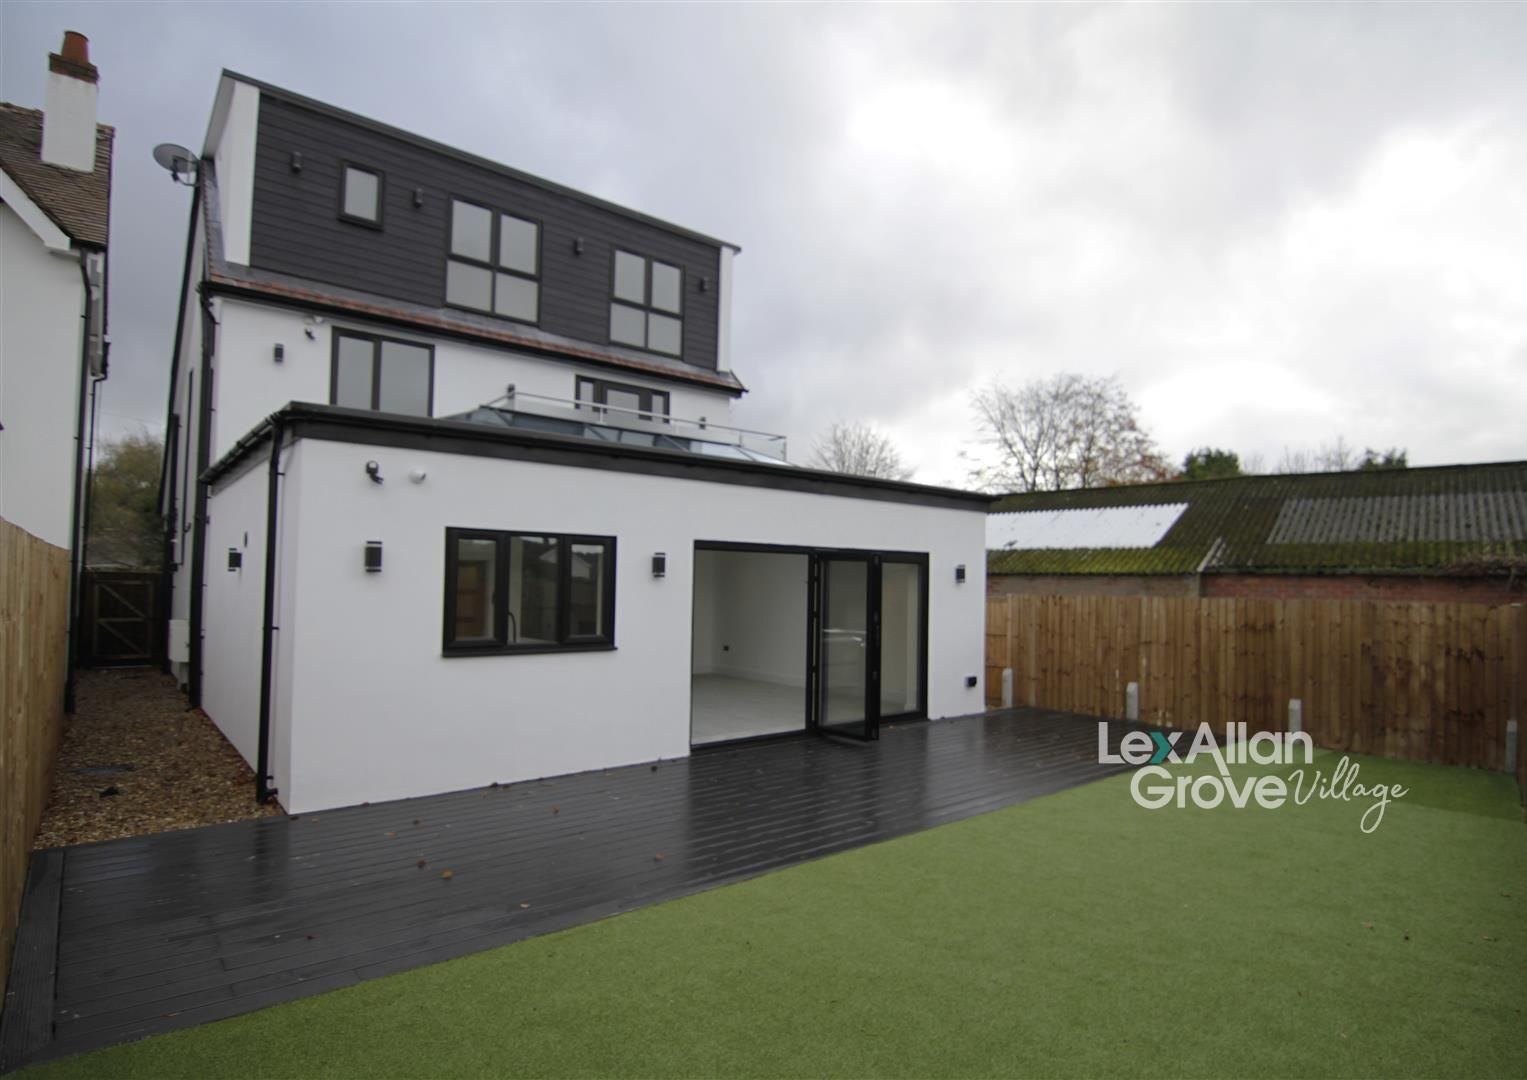 5 bed detached for sale in Hagley 1